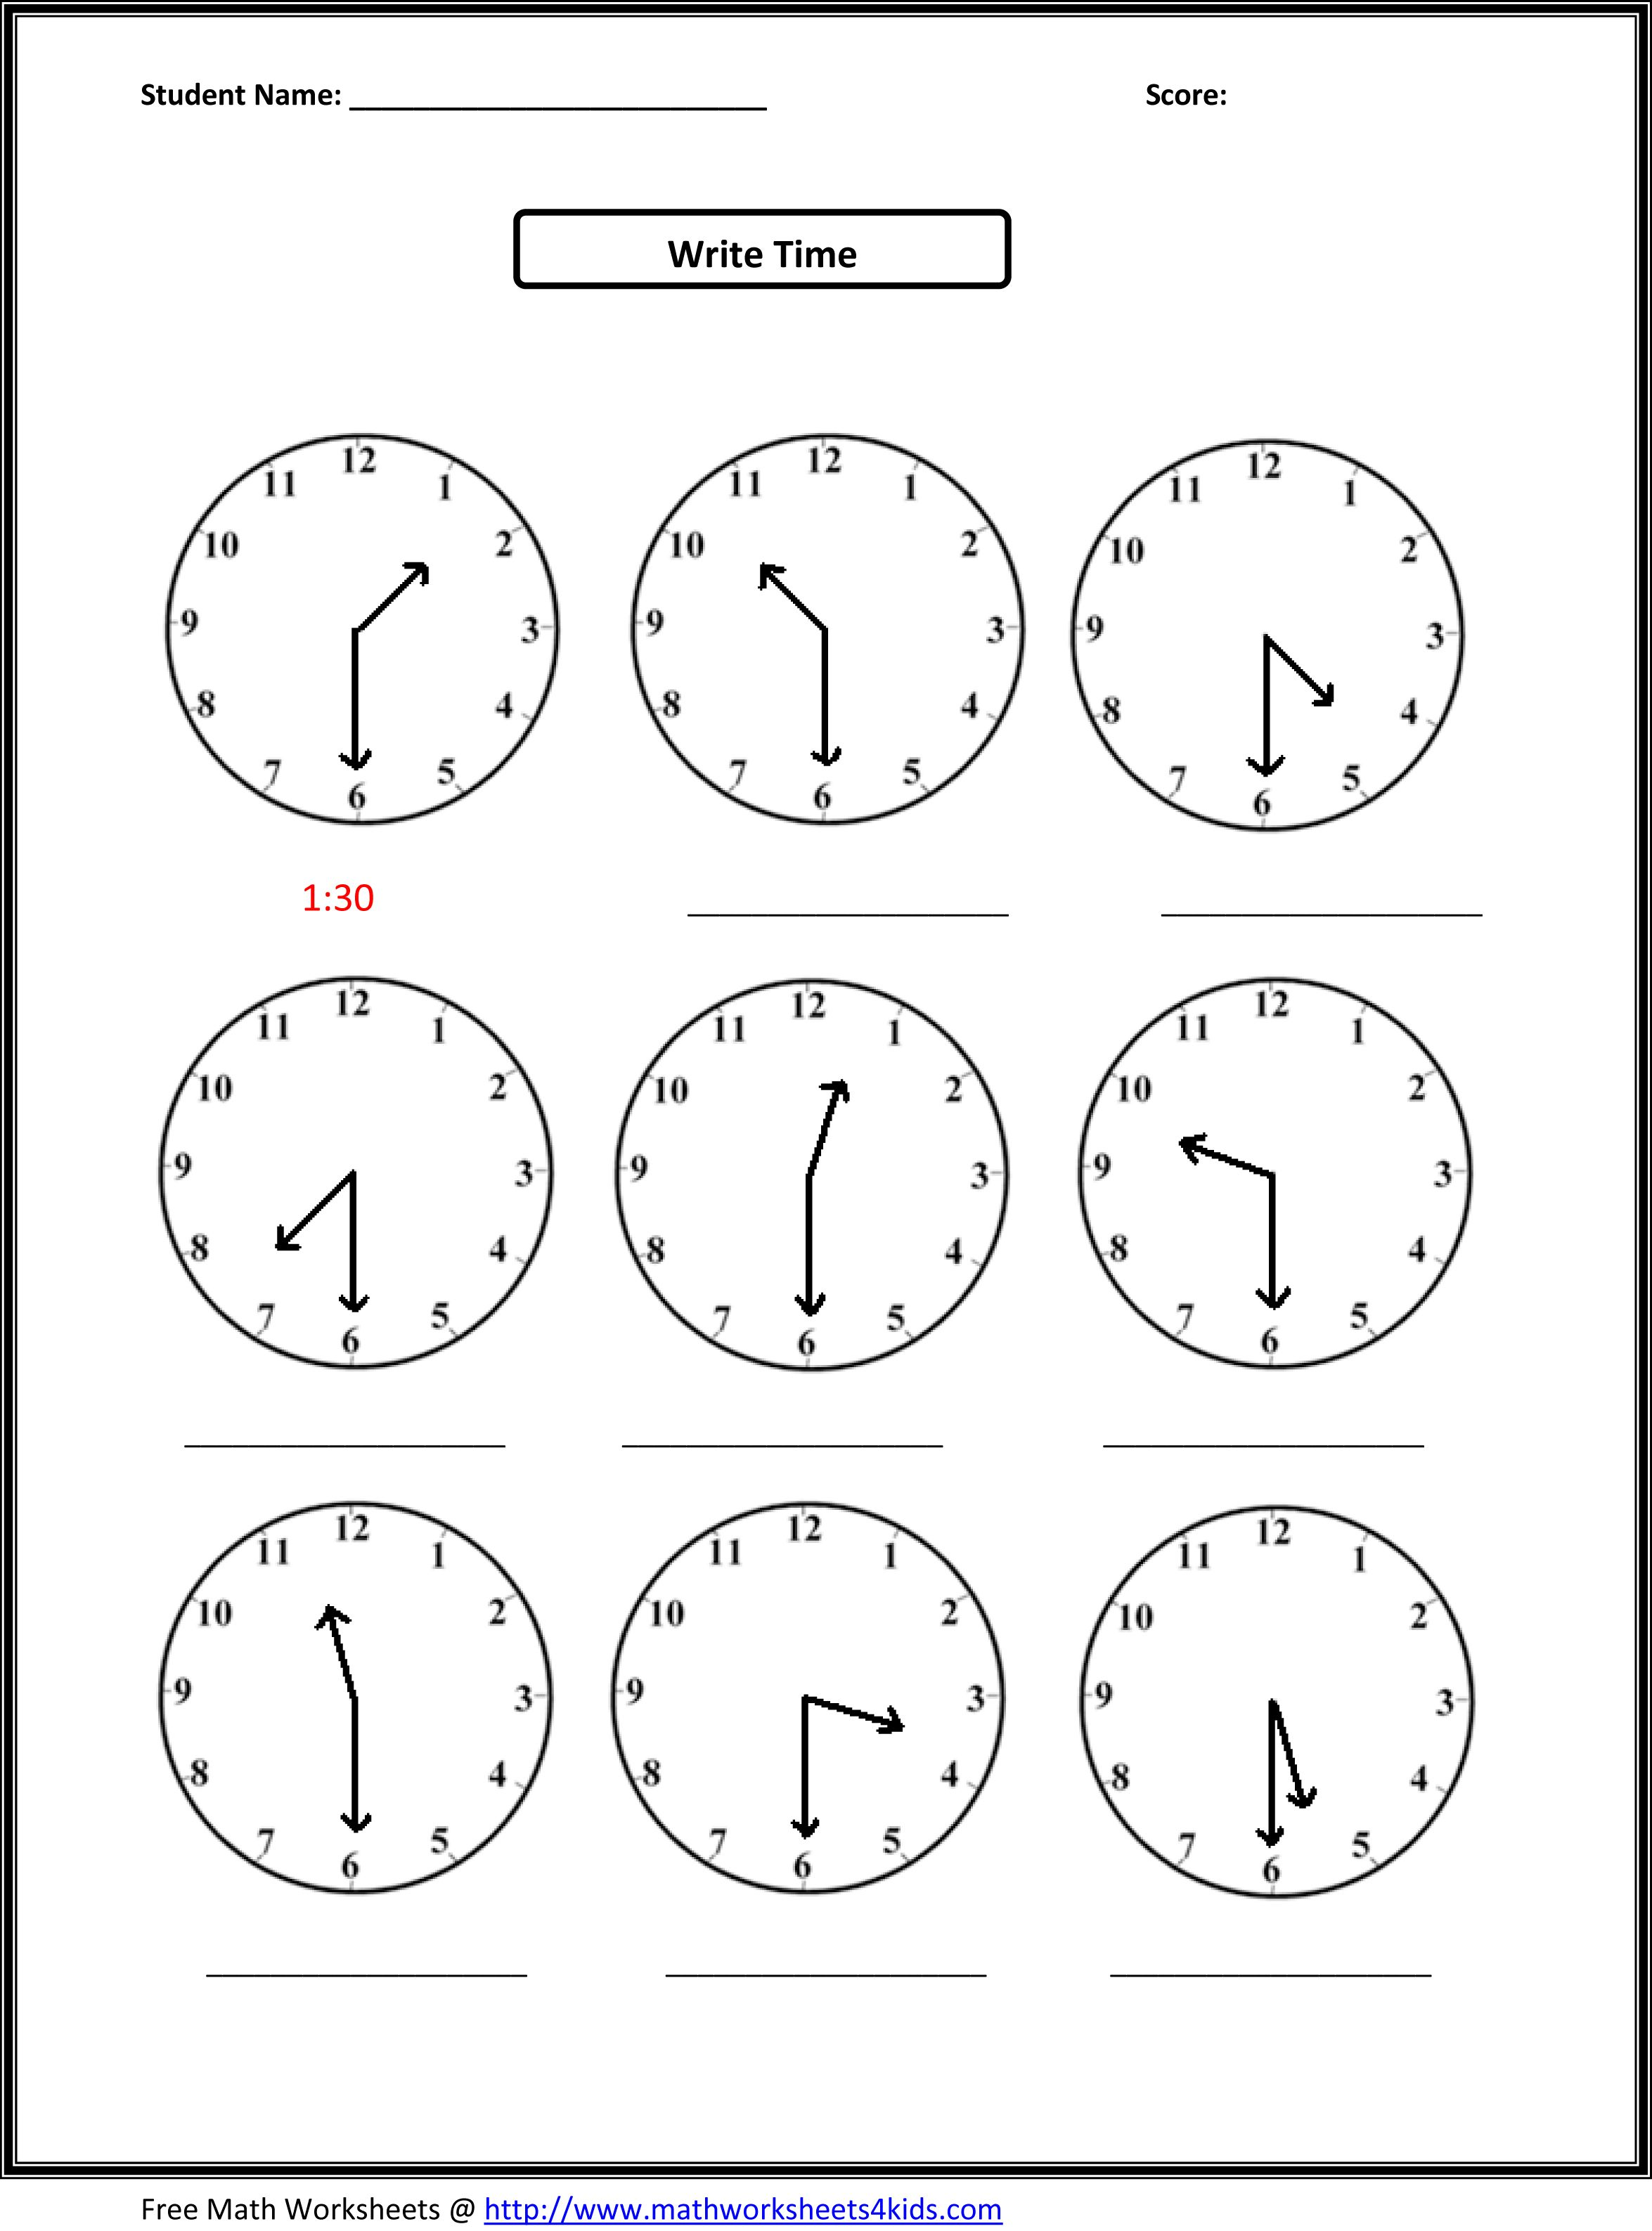 Proatmealus  Pleasant Worksheet On Time For Grade   Reocurent With Likable Free Printable Telling Time Worksheets Nd Grade  Reocurent With Breathtaking Count And Noncount Nouns Esl Worksheet Also Question Worksheets In Addition Best Math Worksheets And Finding The Greatest Common Factor Worksheets As Well As Integer Printable Worksheets Additionally Free Worksheet For St Grade From Reocurentcom With Proatmealus  Likable Worksheet On Time For Grade   Reocurent With Breathtaking Free Printable Telling Time Worksheets Nd Grade  Reocurent And Pleasant Count And Noncount Nouns Esl Worksheet Also Question Worksheets In Addition Best Math Worksheets From Reocurentcom